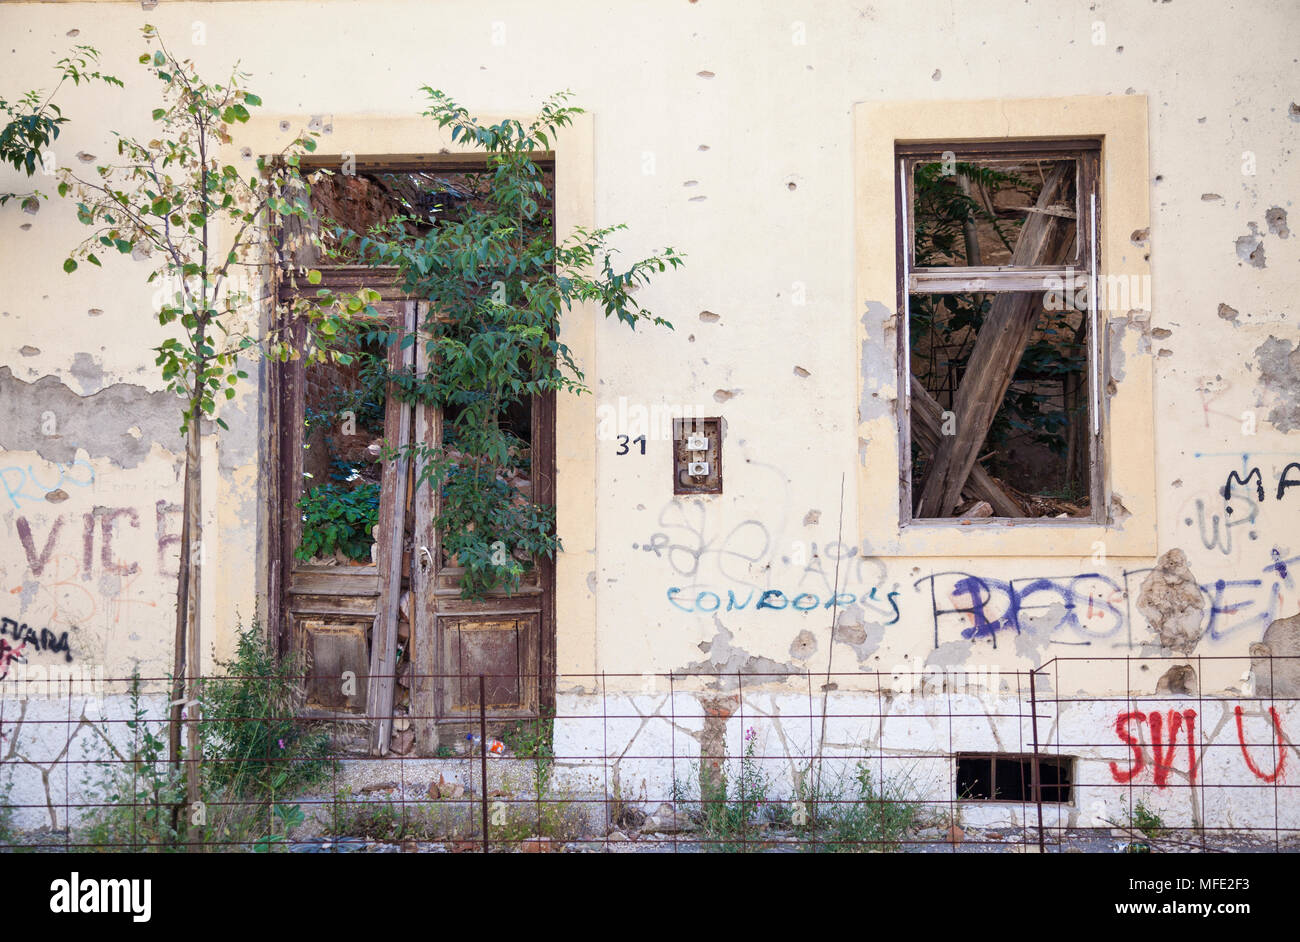 A bombed out building from the Bosnian War in Mostar, Bosnia and Herzegovina - Stock Image